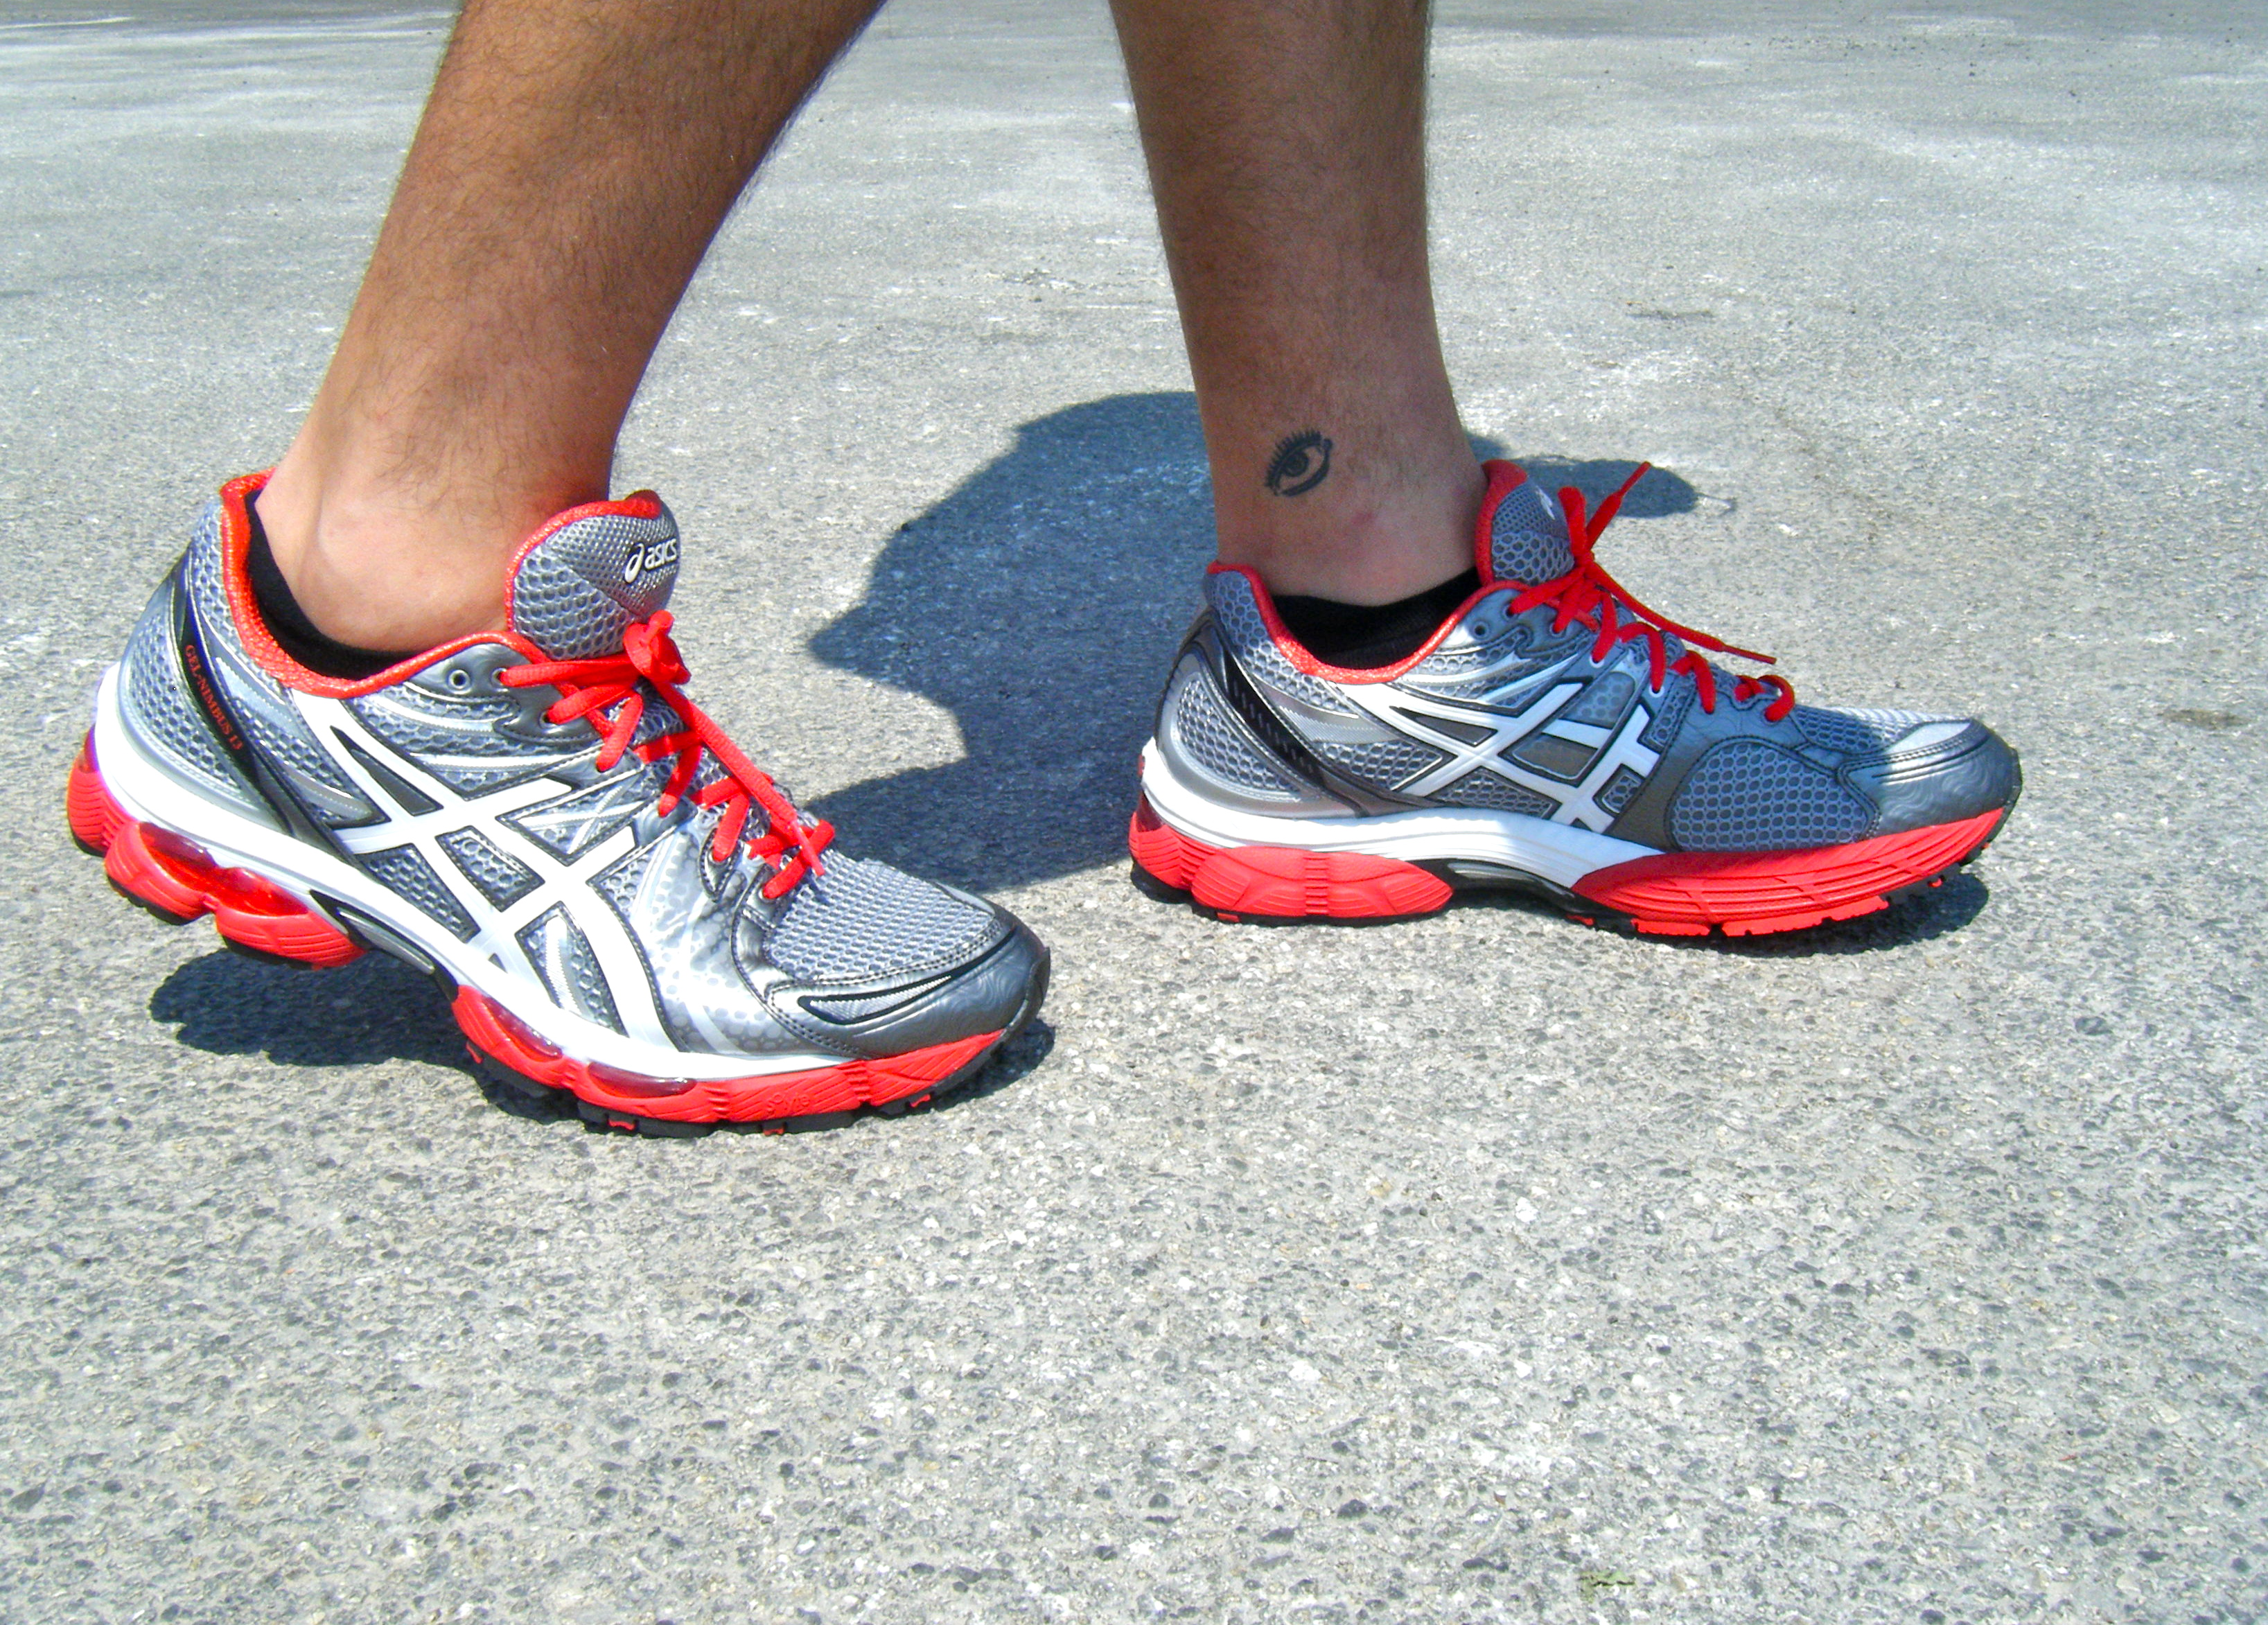 asics gel-nimbus 13 shoes